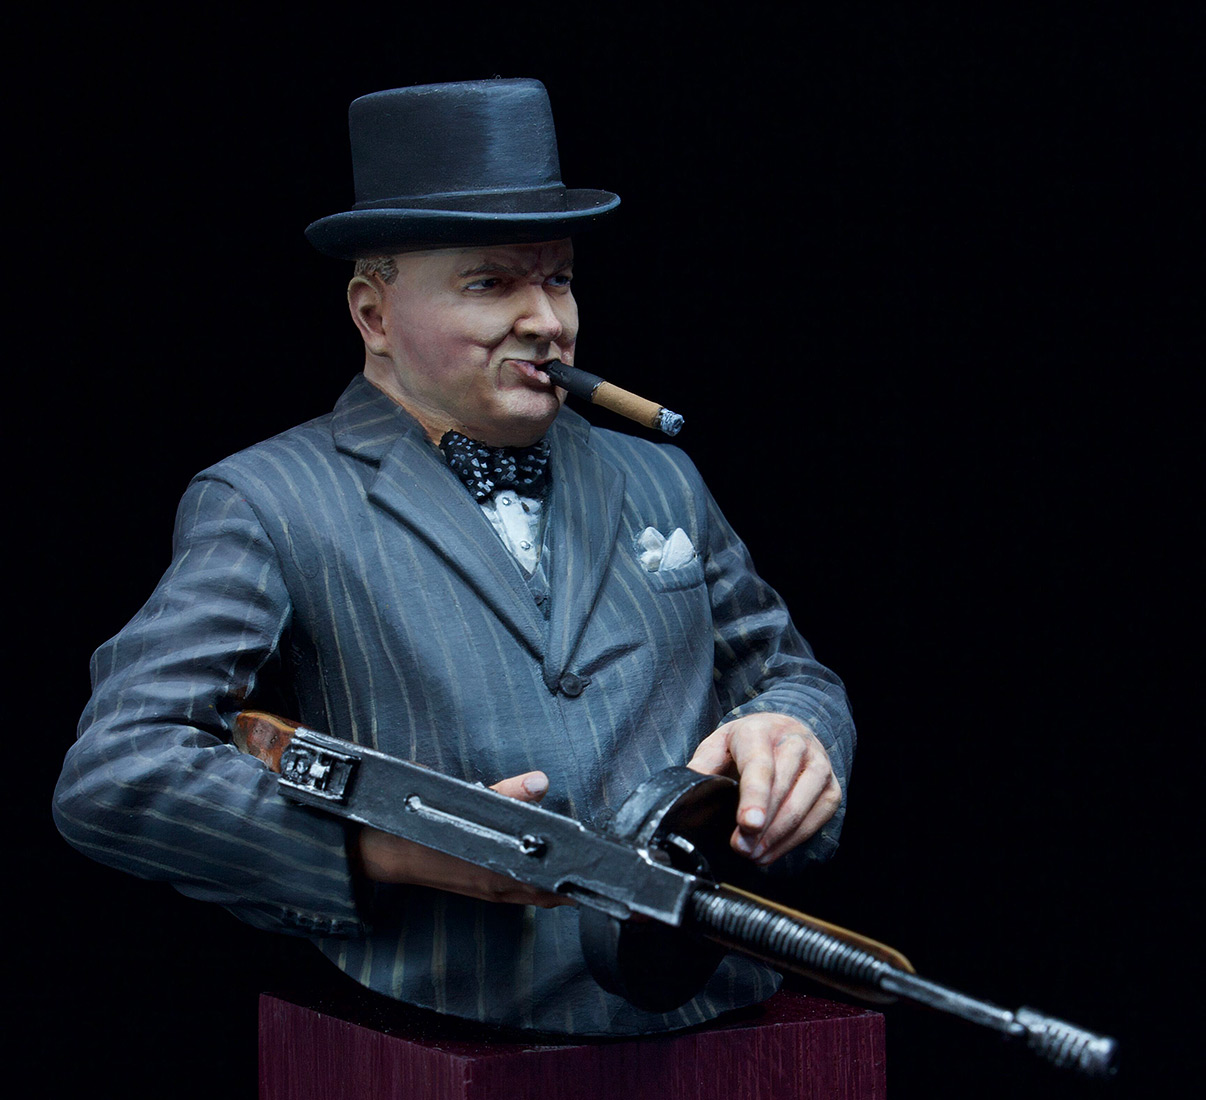 Figures: Winston Churchill with Thompson SMG, 1940, photo #6